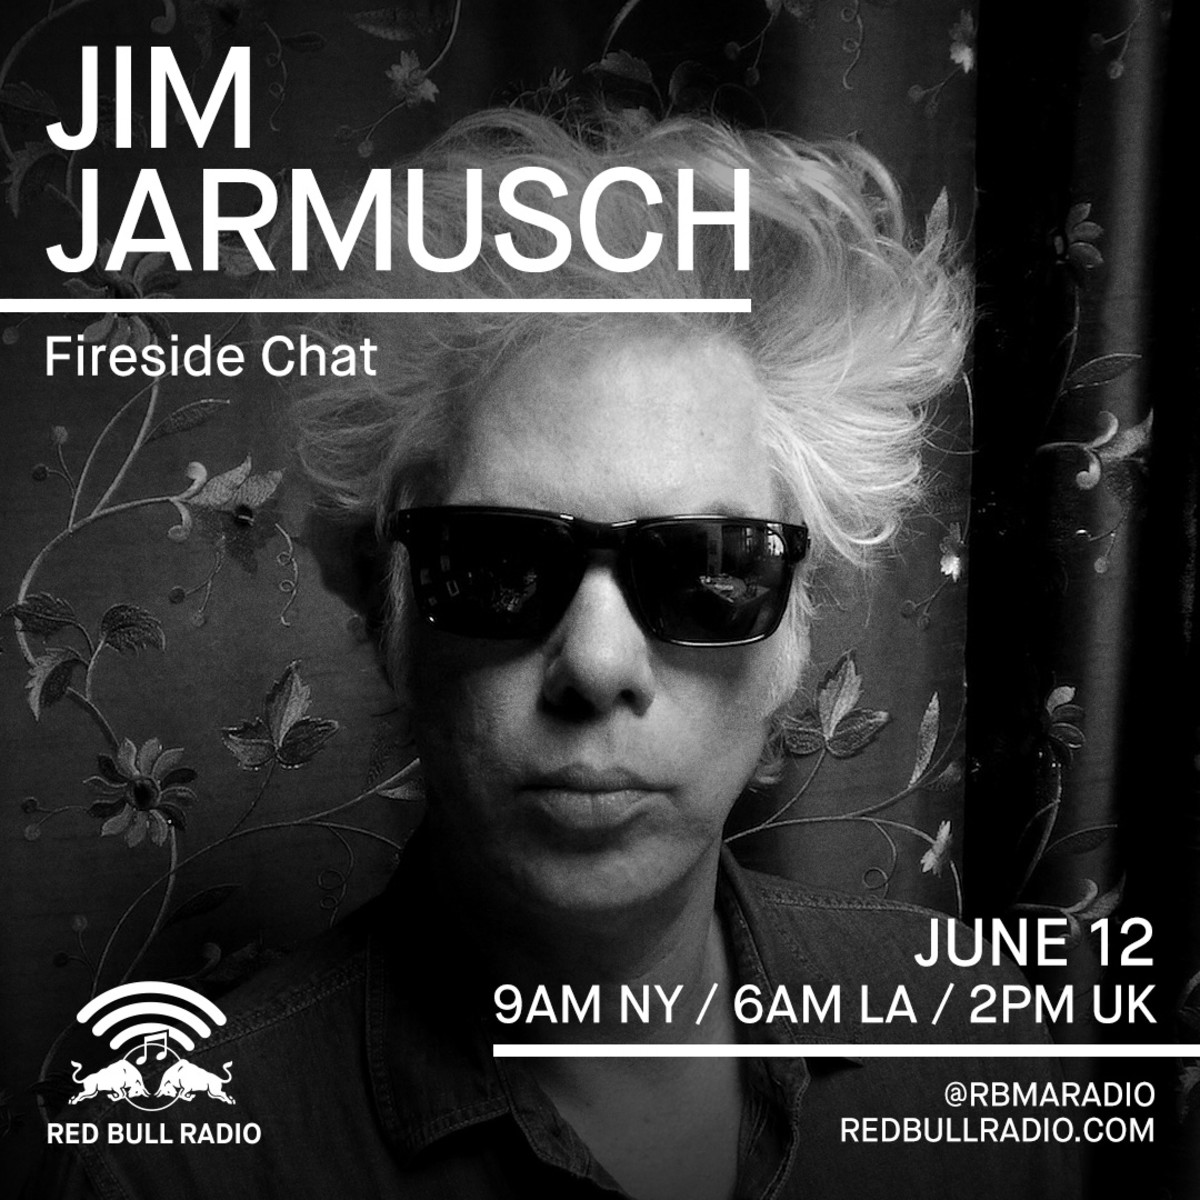 Jun_12_FiresideChat-Jim-Jarmusch (1)